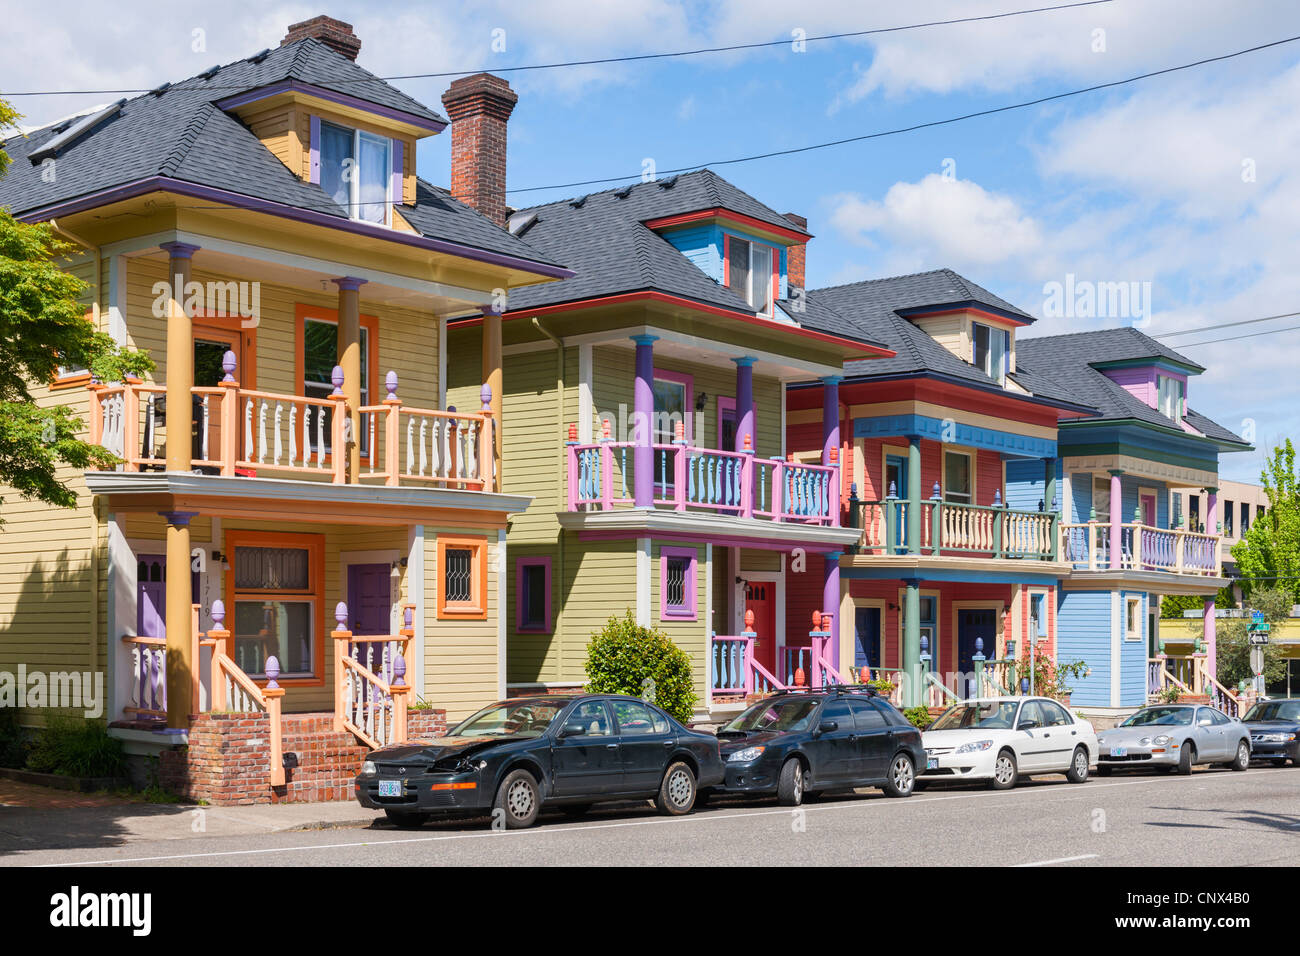 Colourful Townhouses, Portland - Stock Image